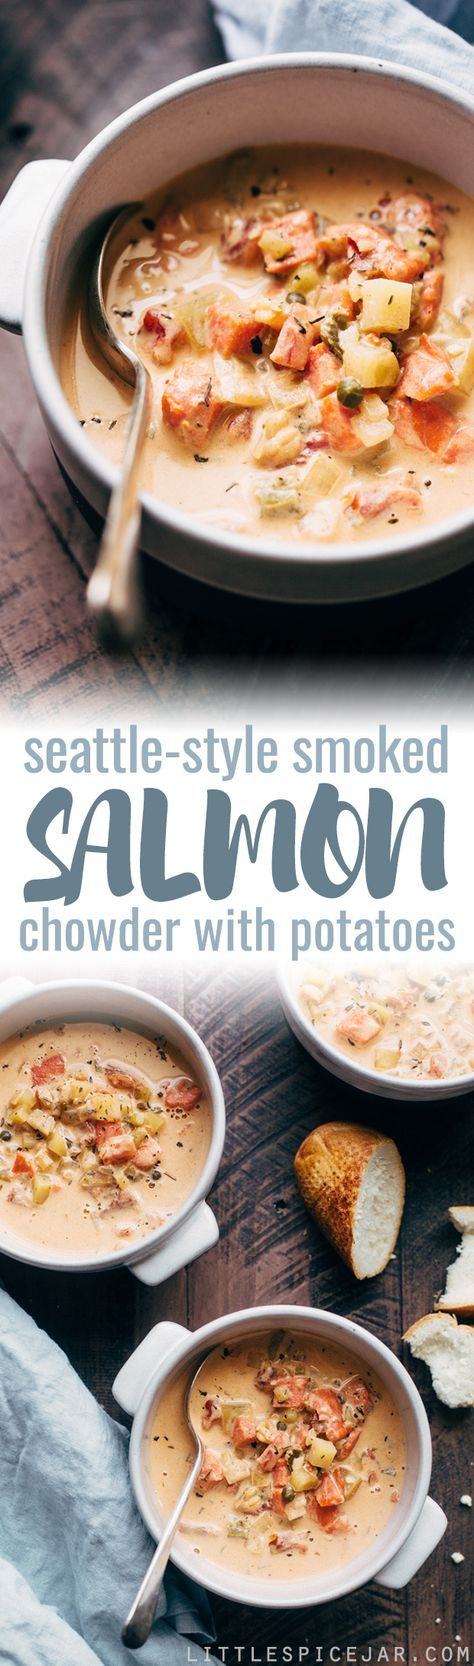 Seattle Style Smoked Salmon Chowder -The creamiest, coziest bowl of homemade smoked salmon chowder you'll ever have! This chowder is naturally thickened with potatoes and is super luxurious! #smokedsalmonchowder #chowder #pikeplacechowder #salmonchowder   Littlespicejar.com